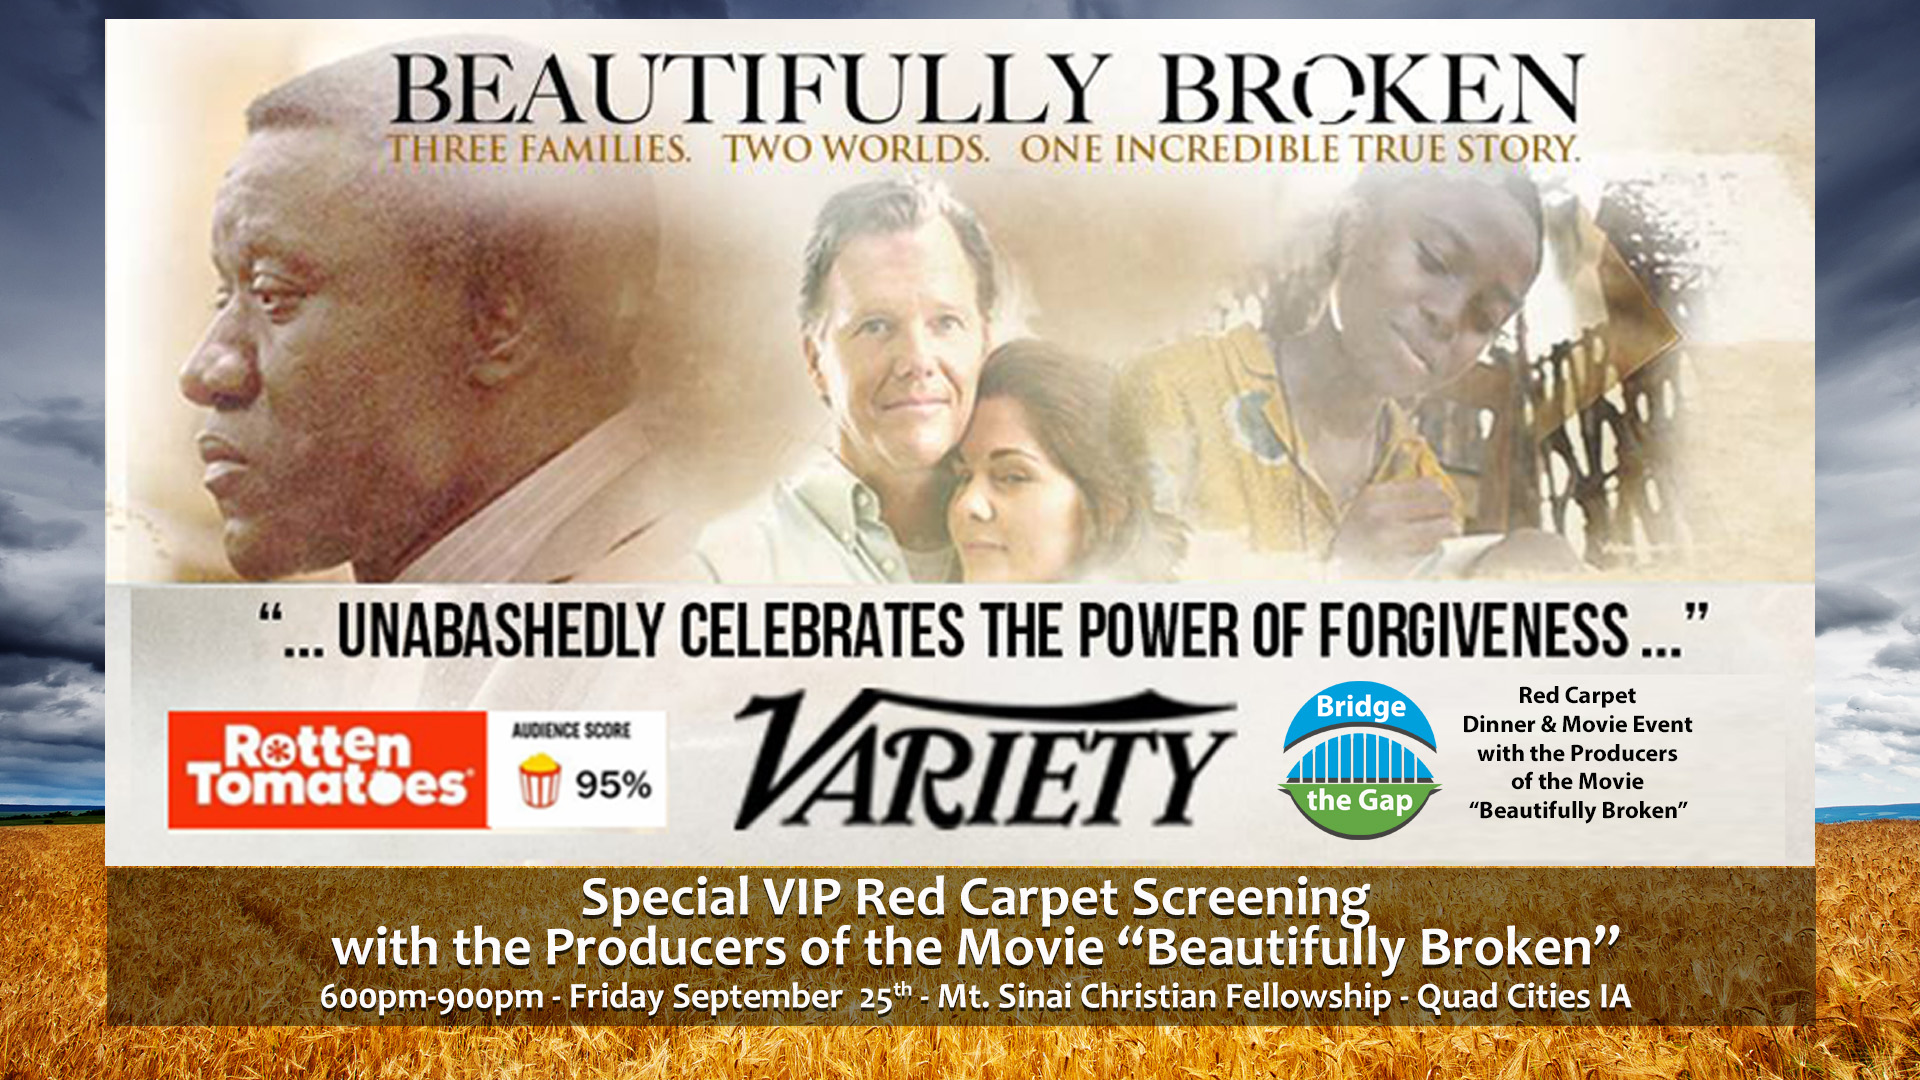 Beautifully Broken ViP Red Carpet Screening